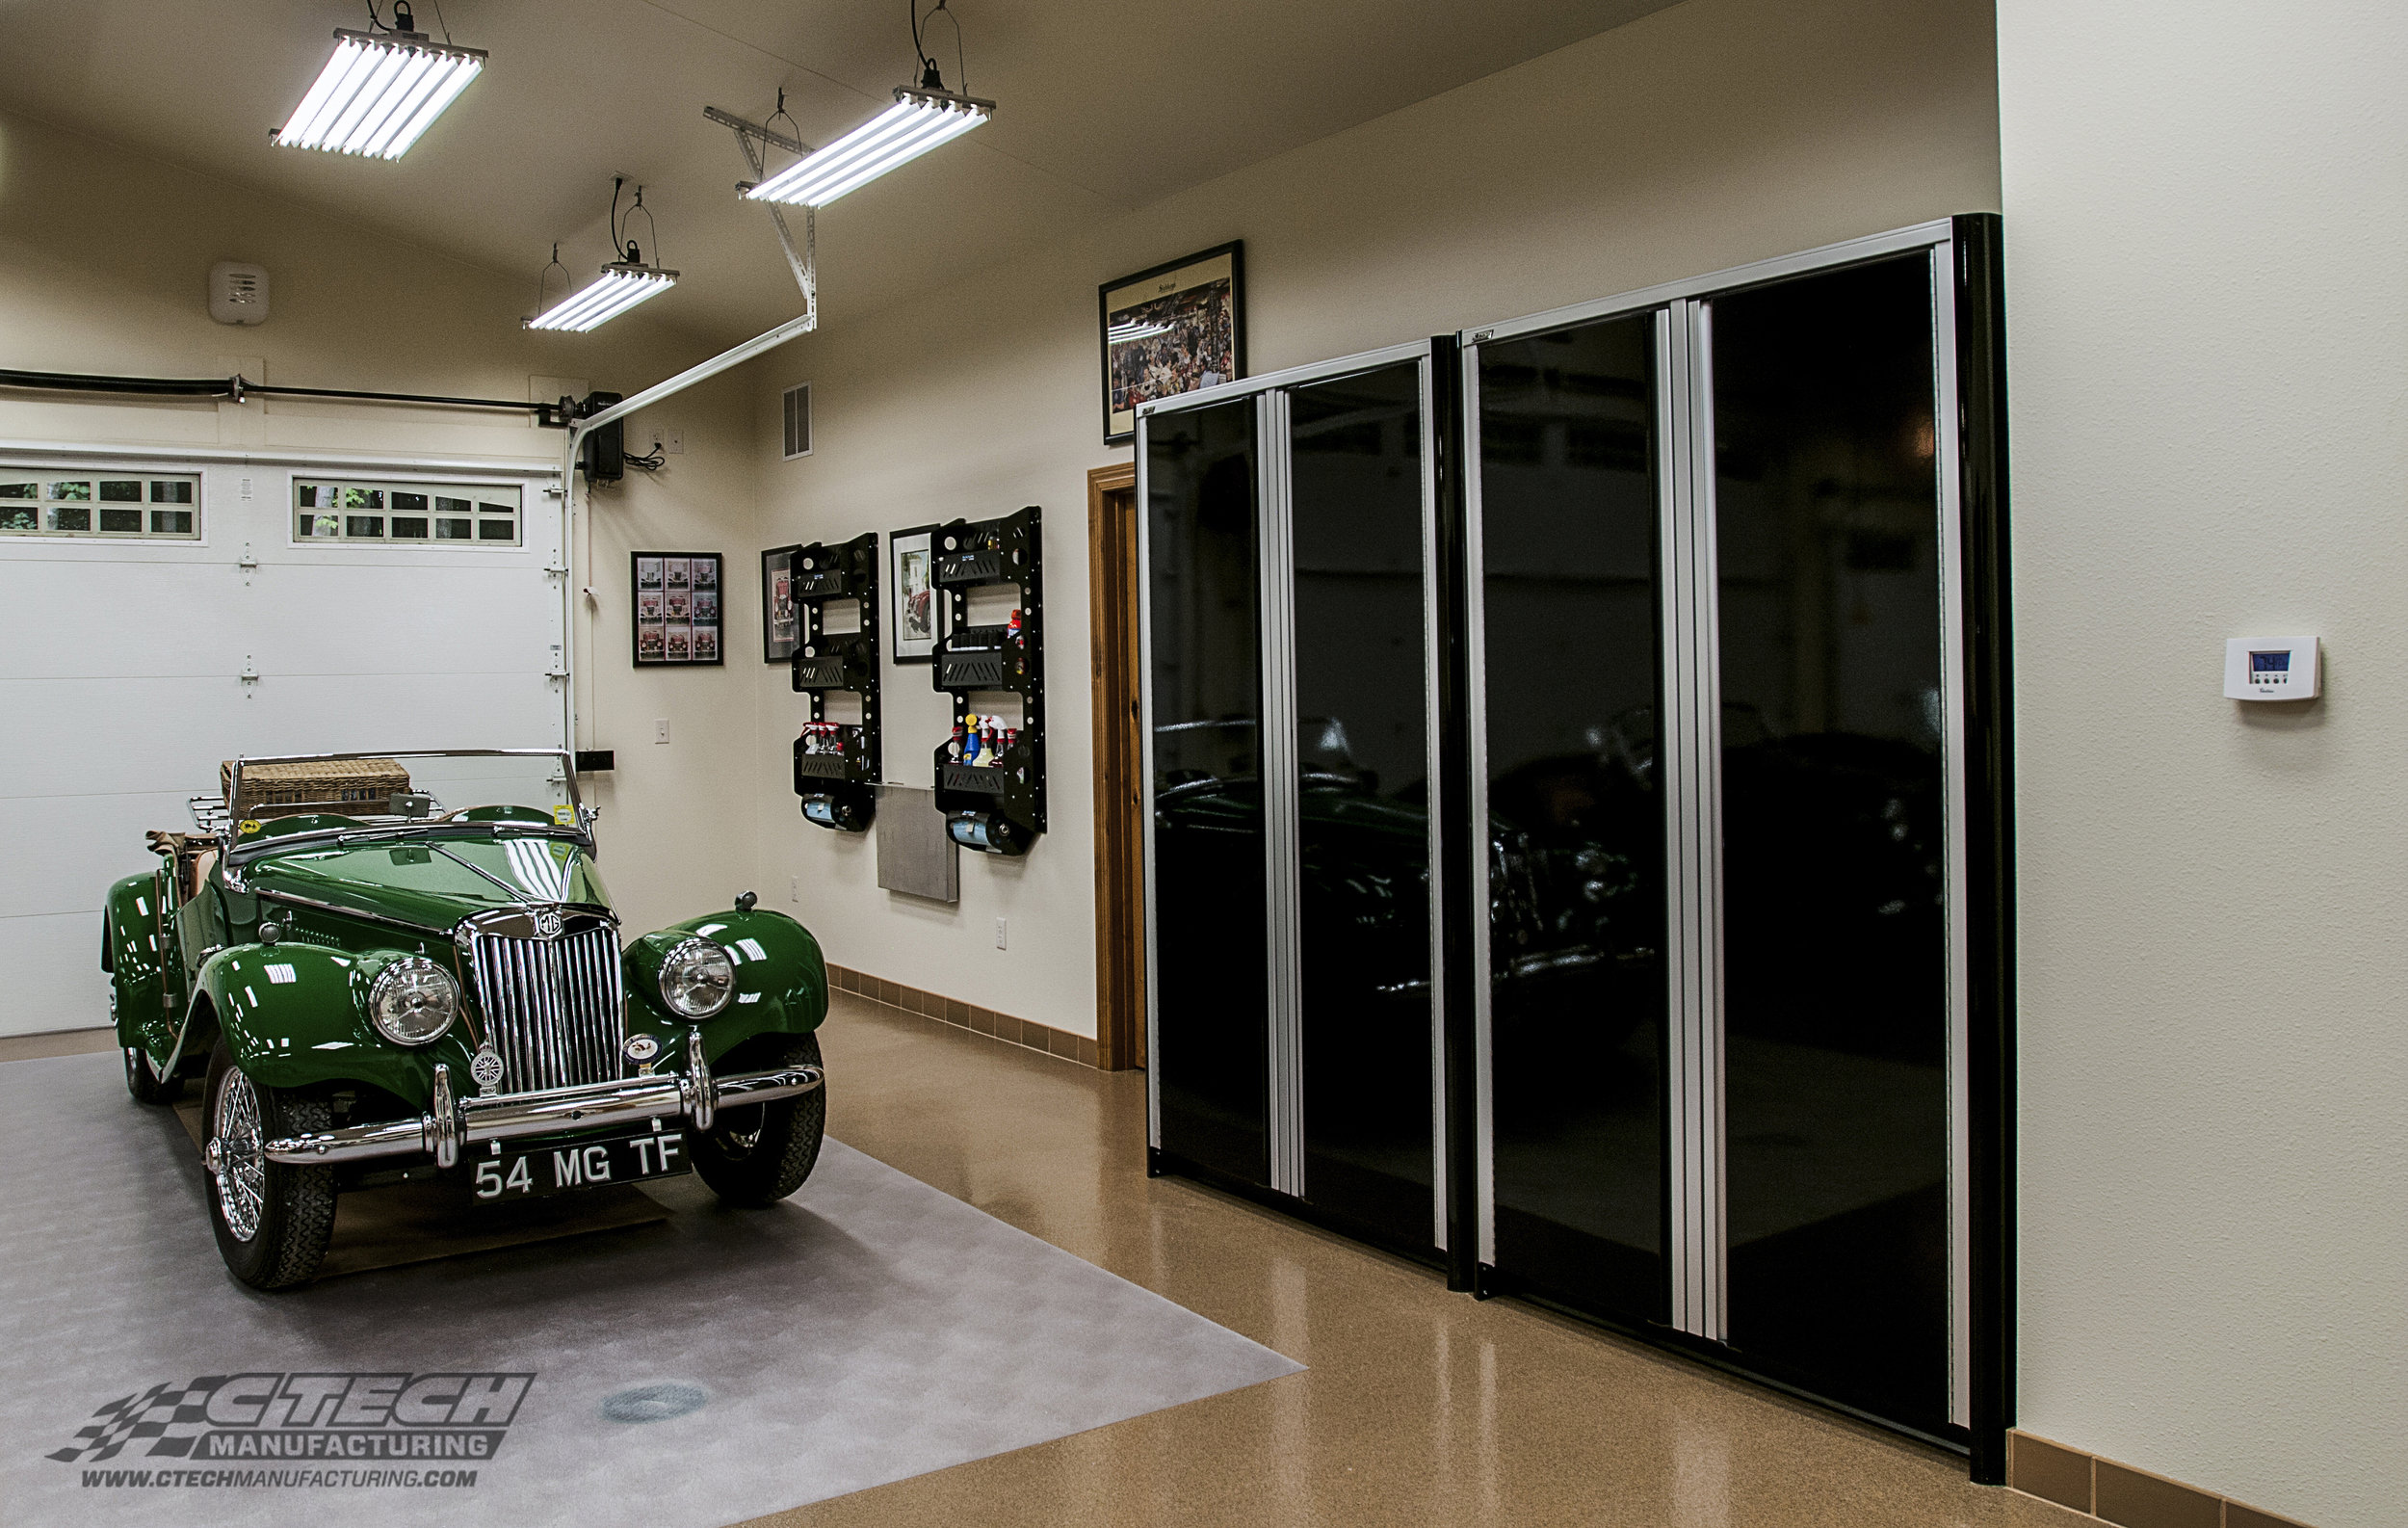 Taking away clutter puts more emphasis on things that matter most, like your favorite collector car. Although, the cabinets are impressive in their own right! You might find that you get just as many compliments on your CTECH Cabinet and Blackline Accessories as you do on your collector items!